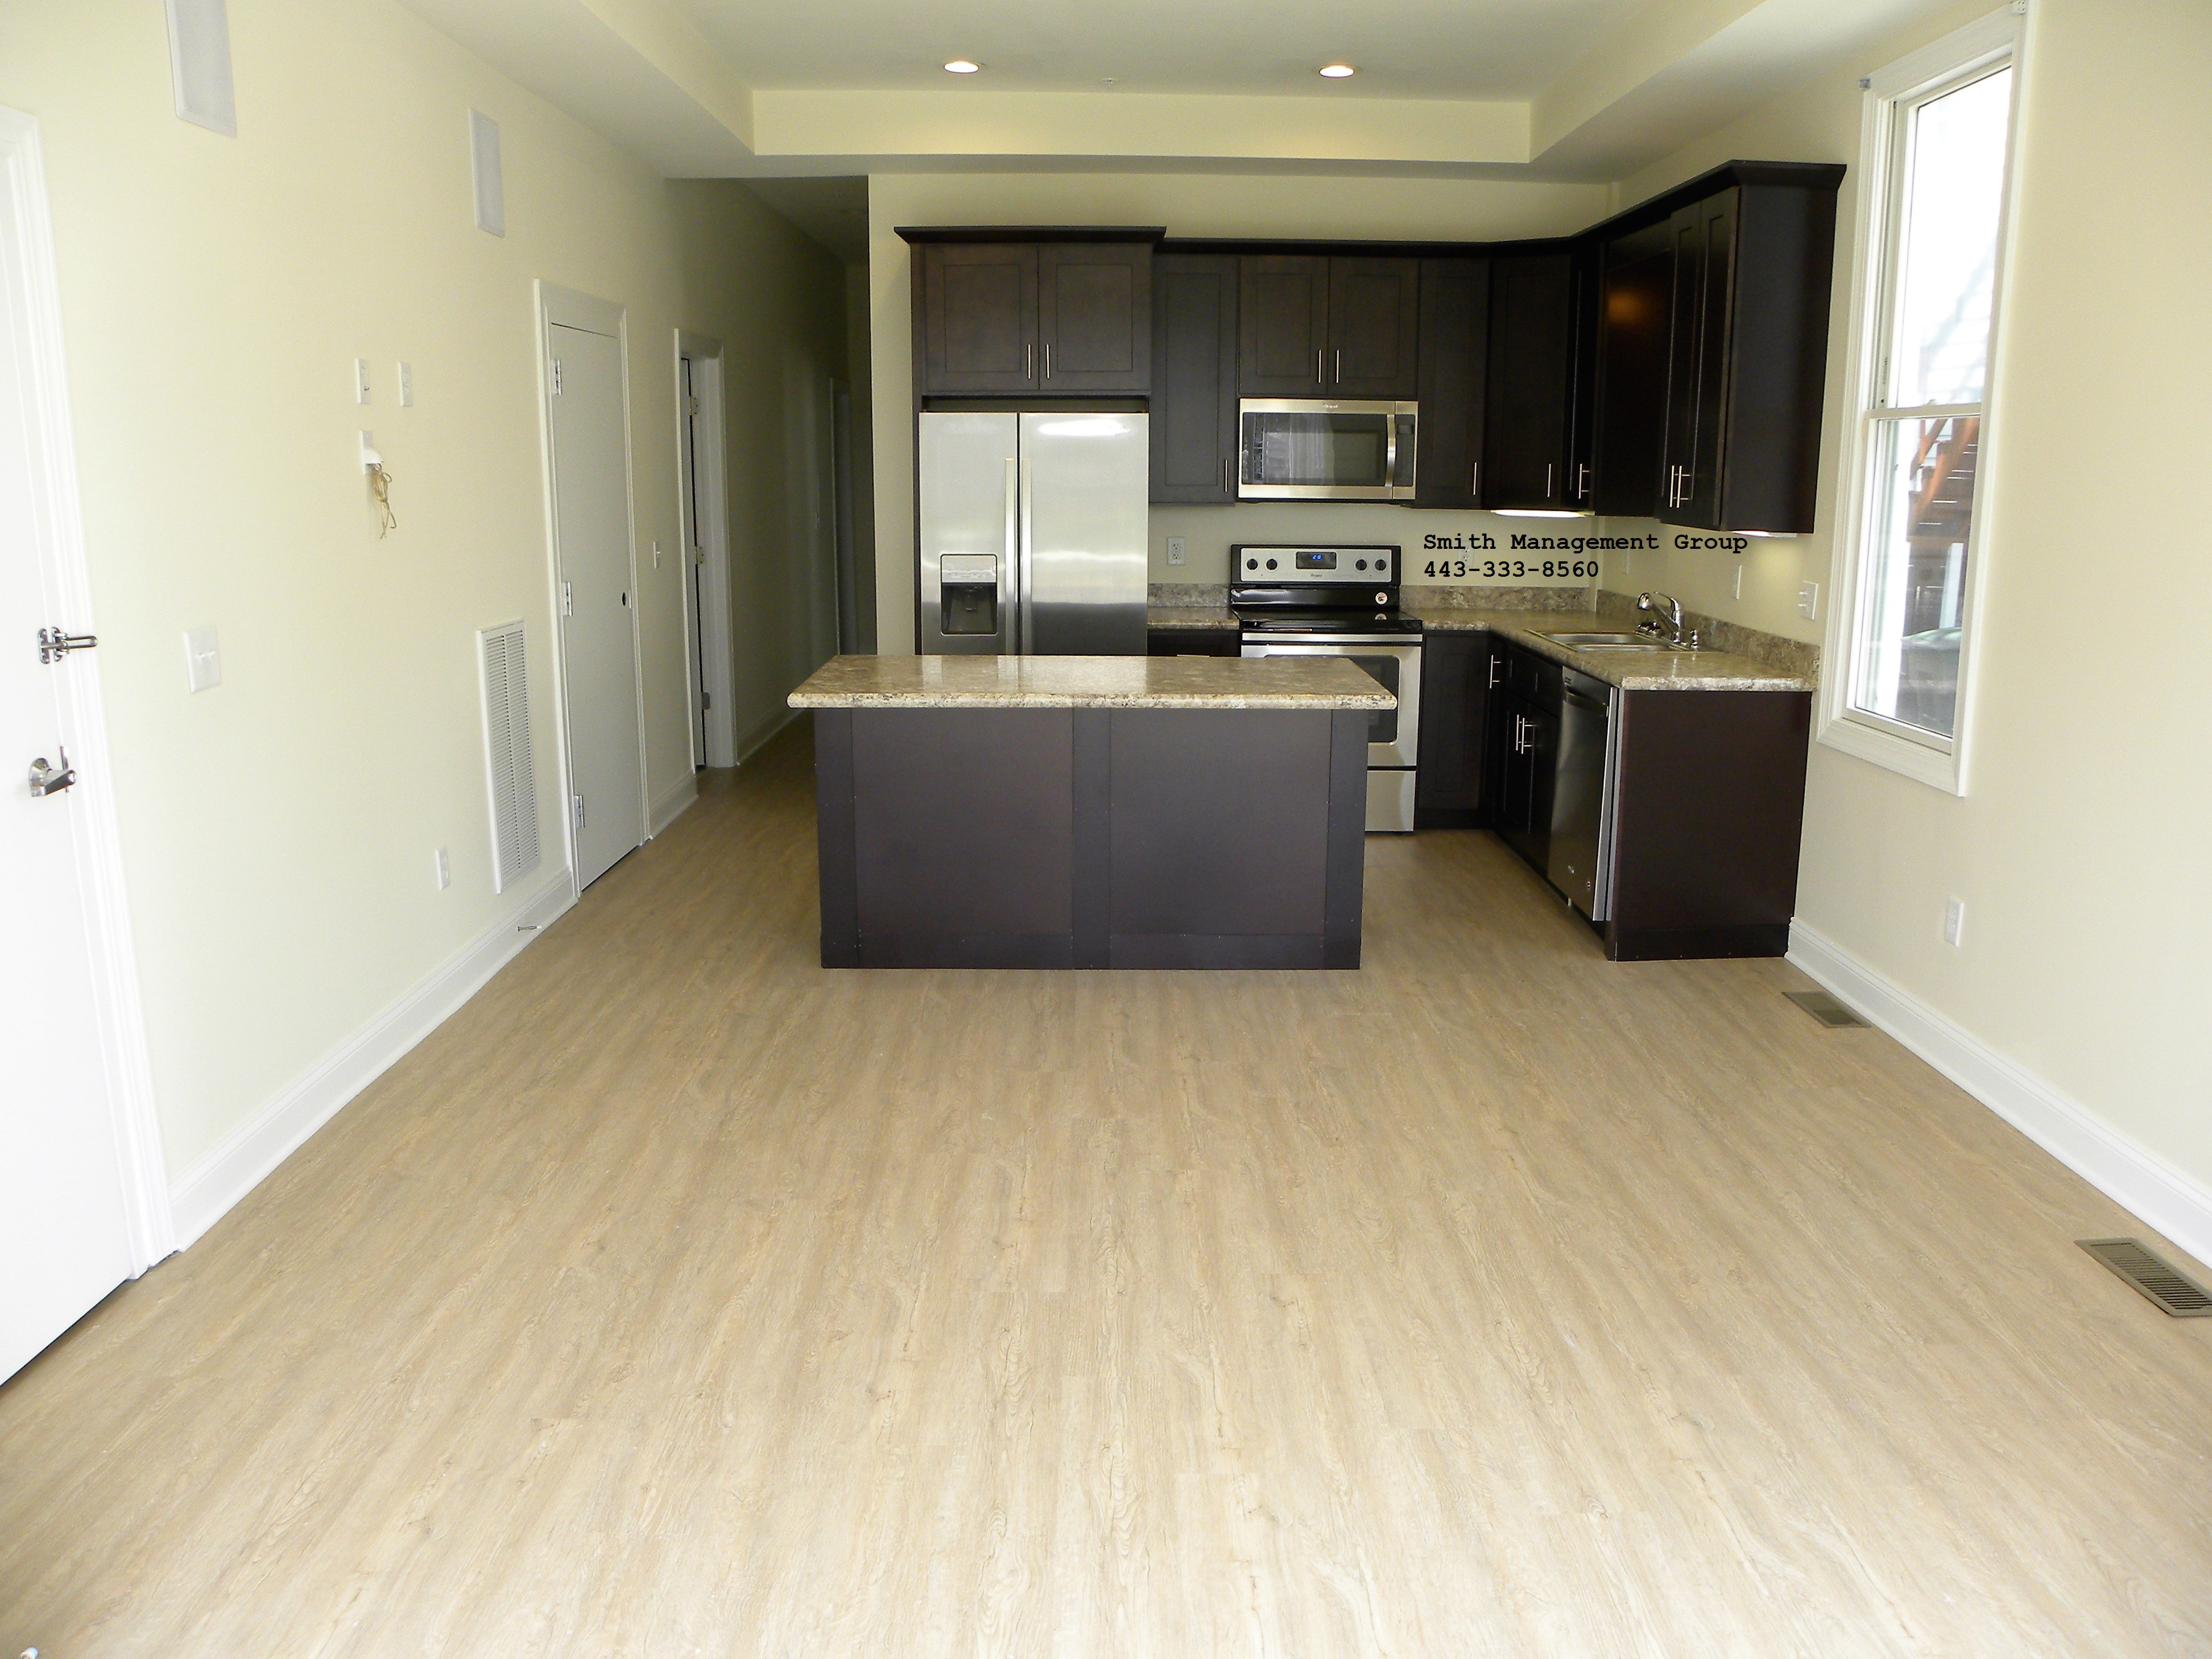 220 N  Division St  Unit 2  Salisbury  MD. Salisbury  MD   Homes For Rent